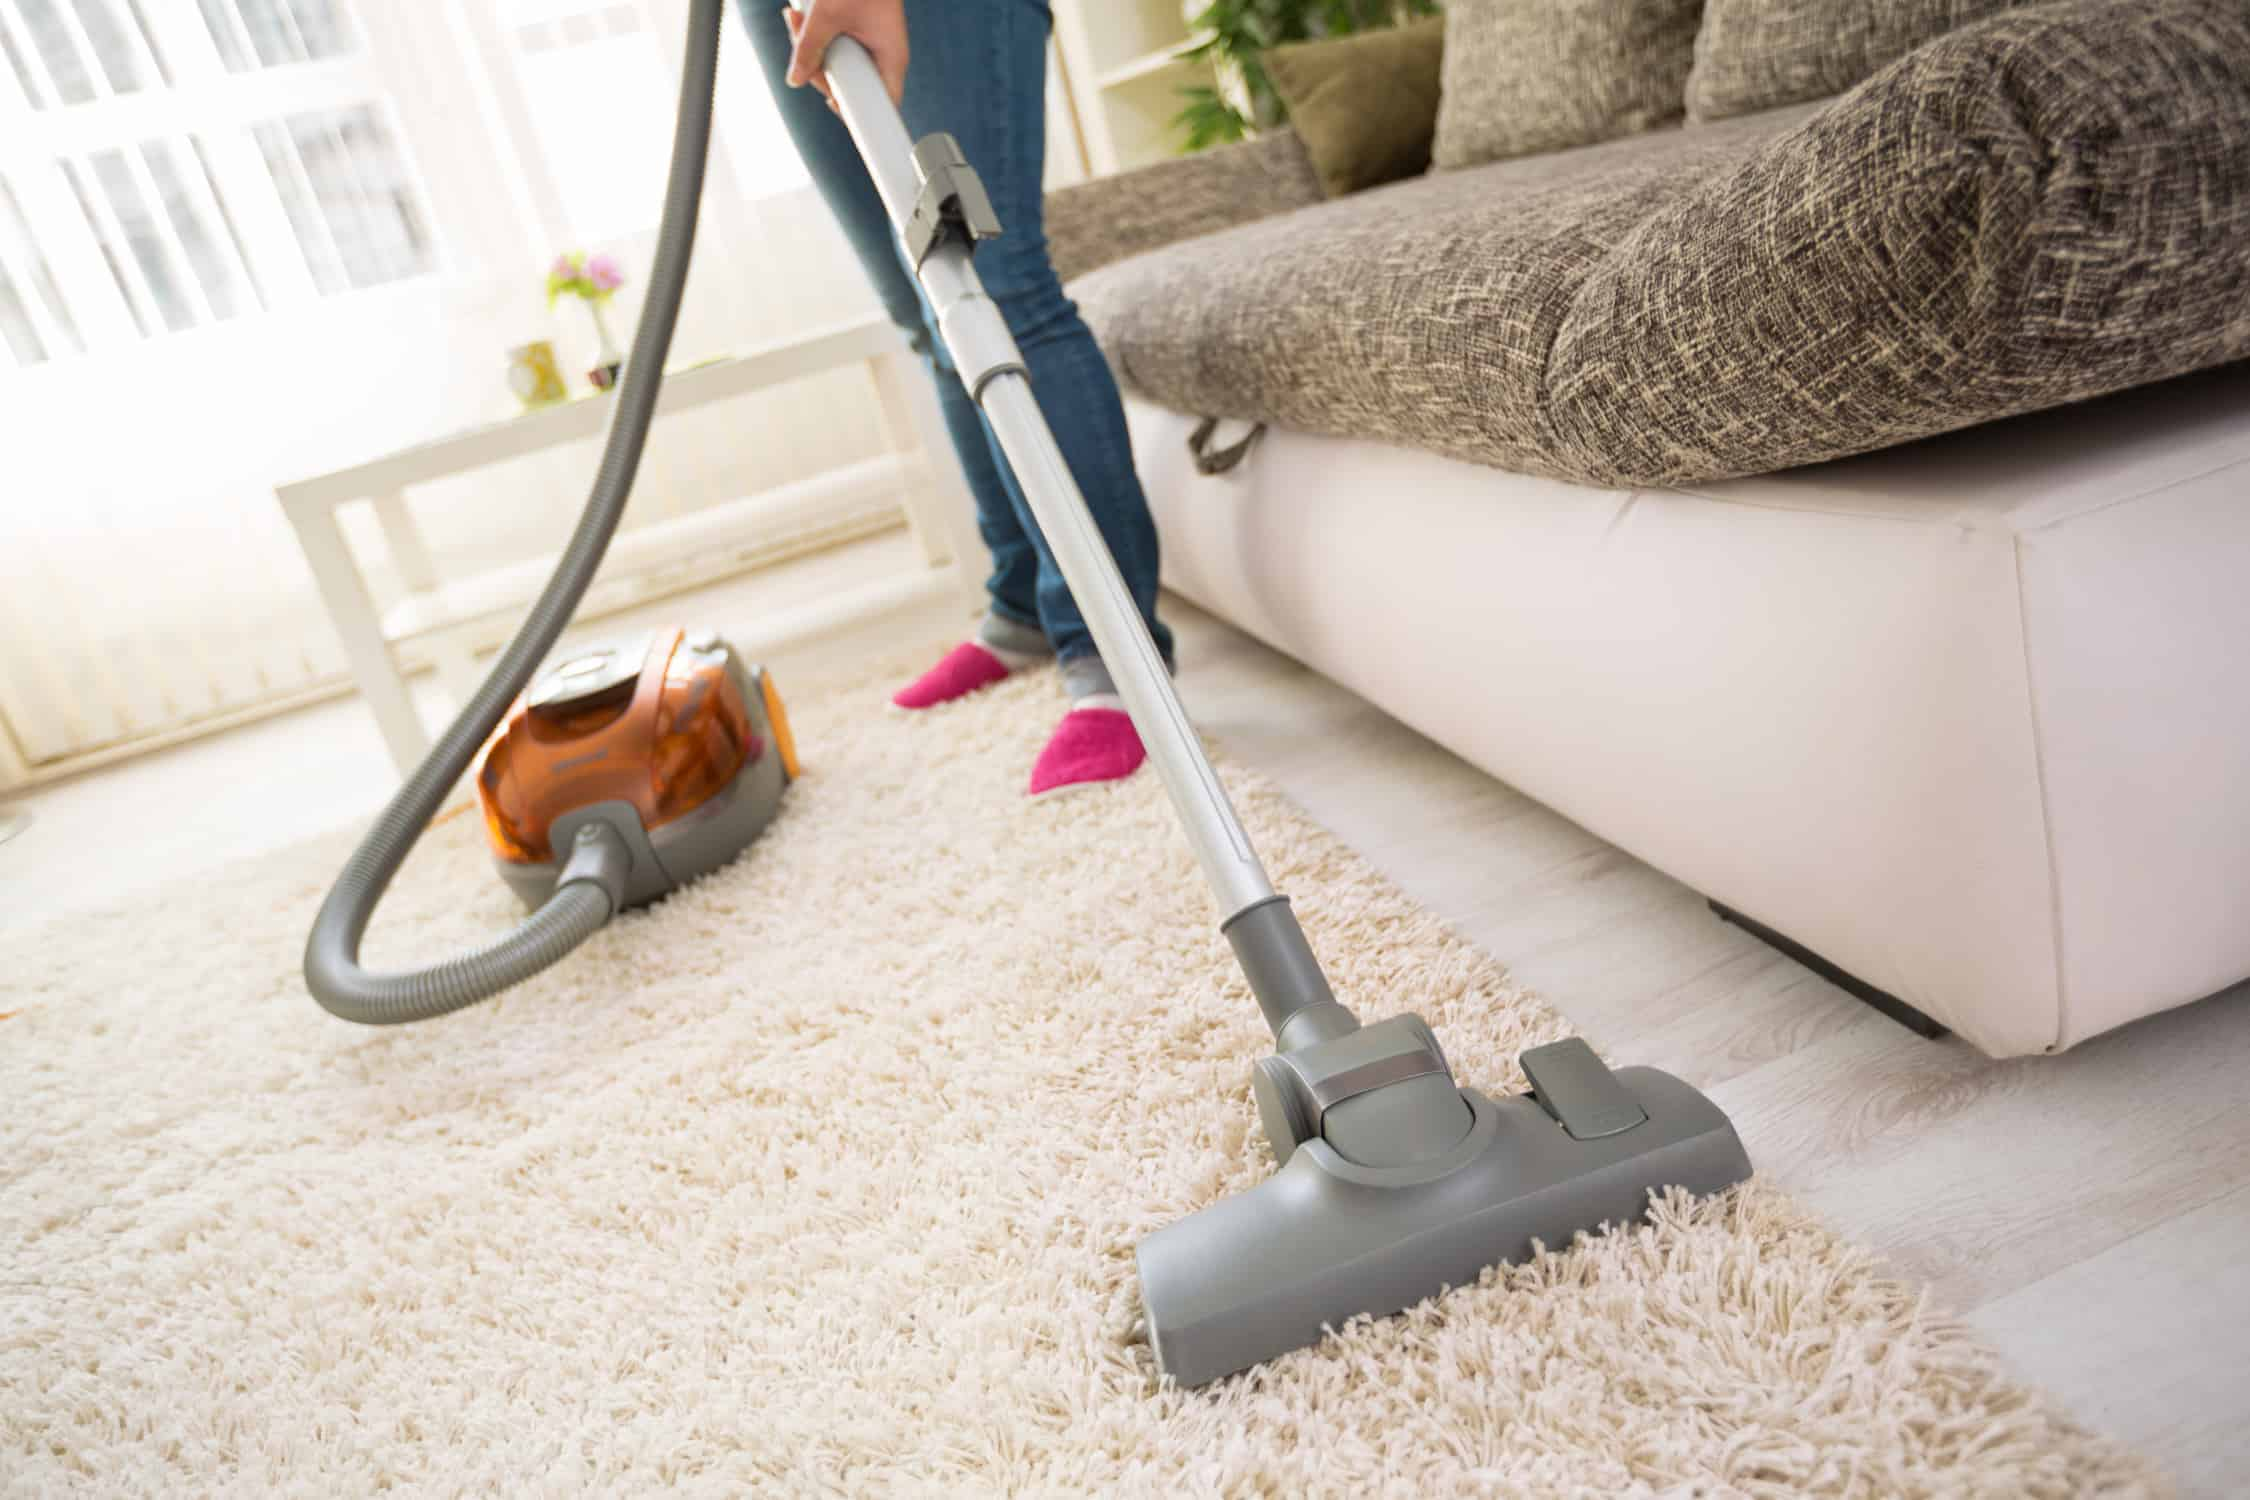 Carpet vacuuming mistakes